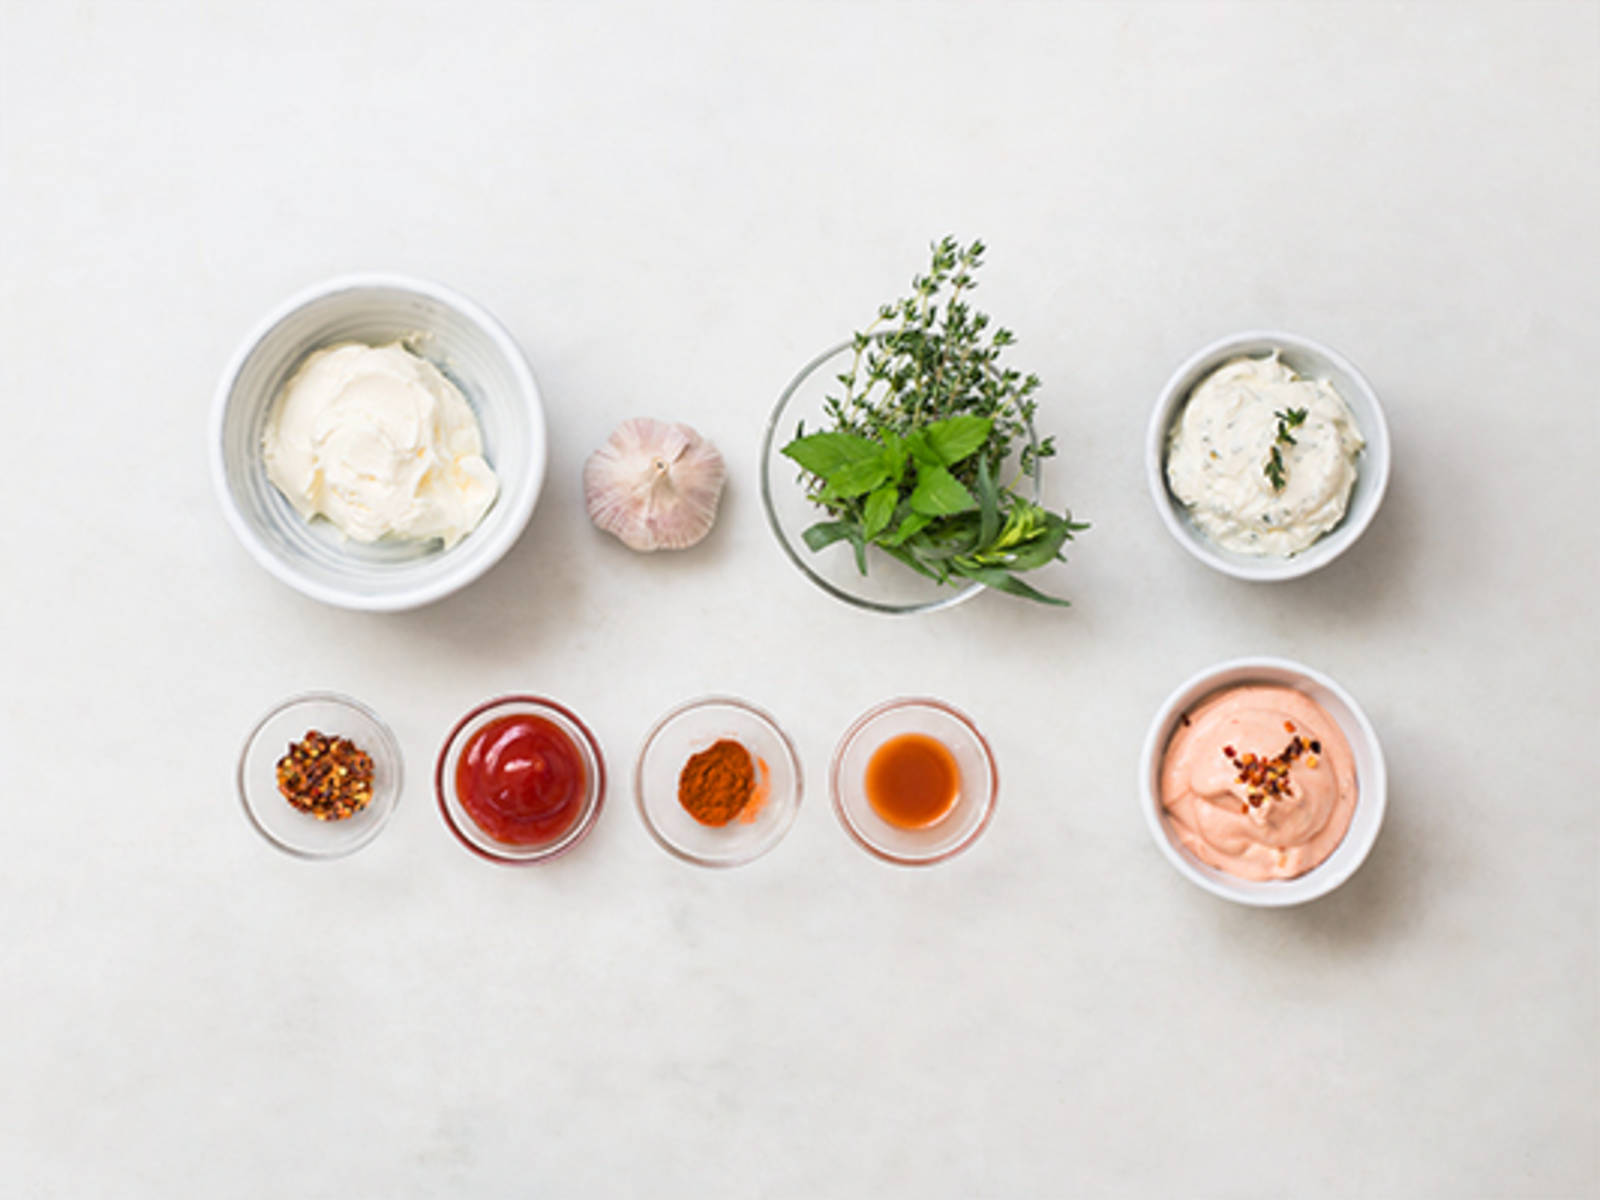 How to Prepare Yogurt Dipping Sauces